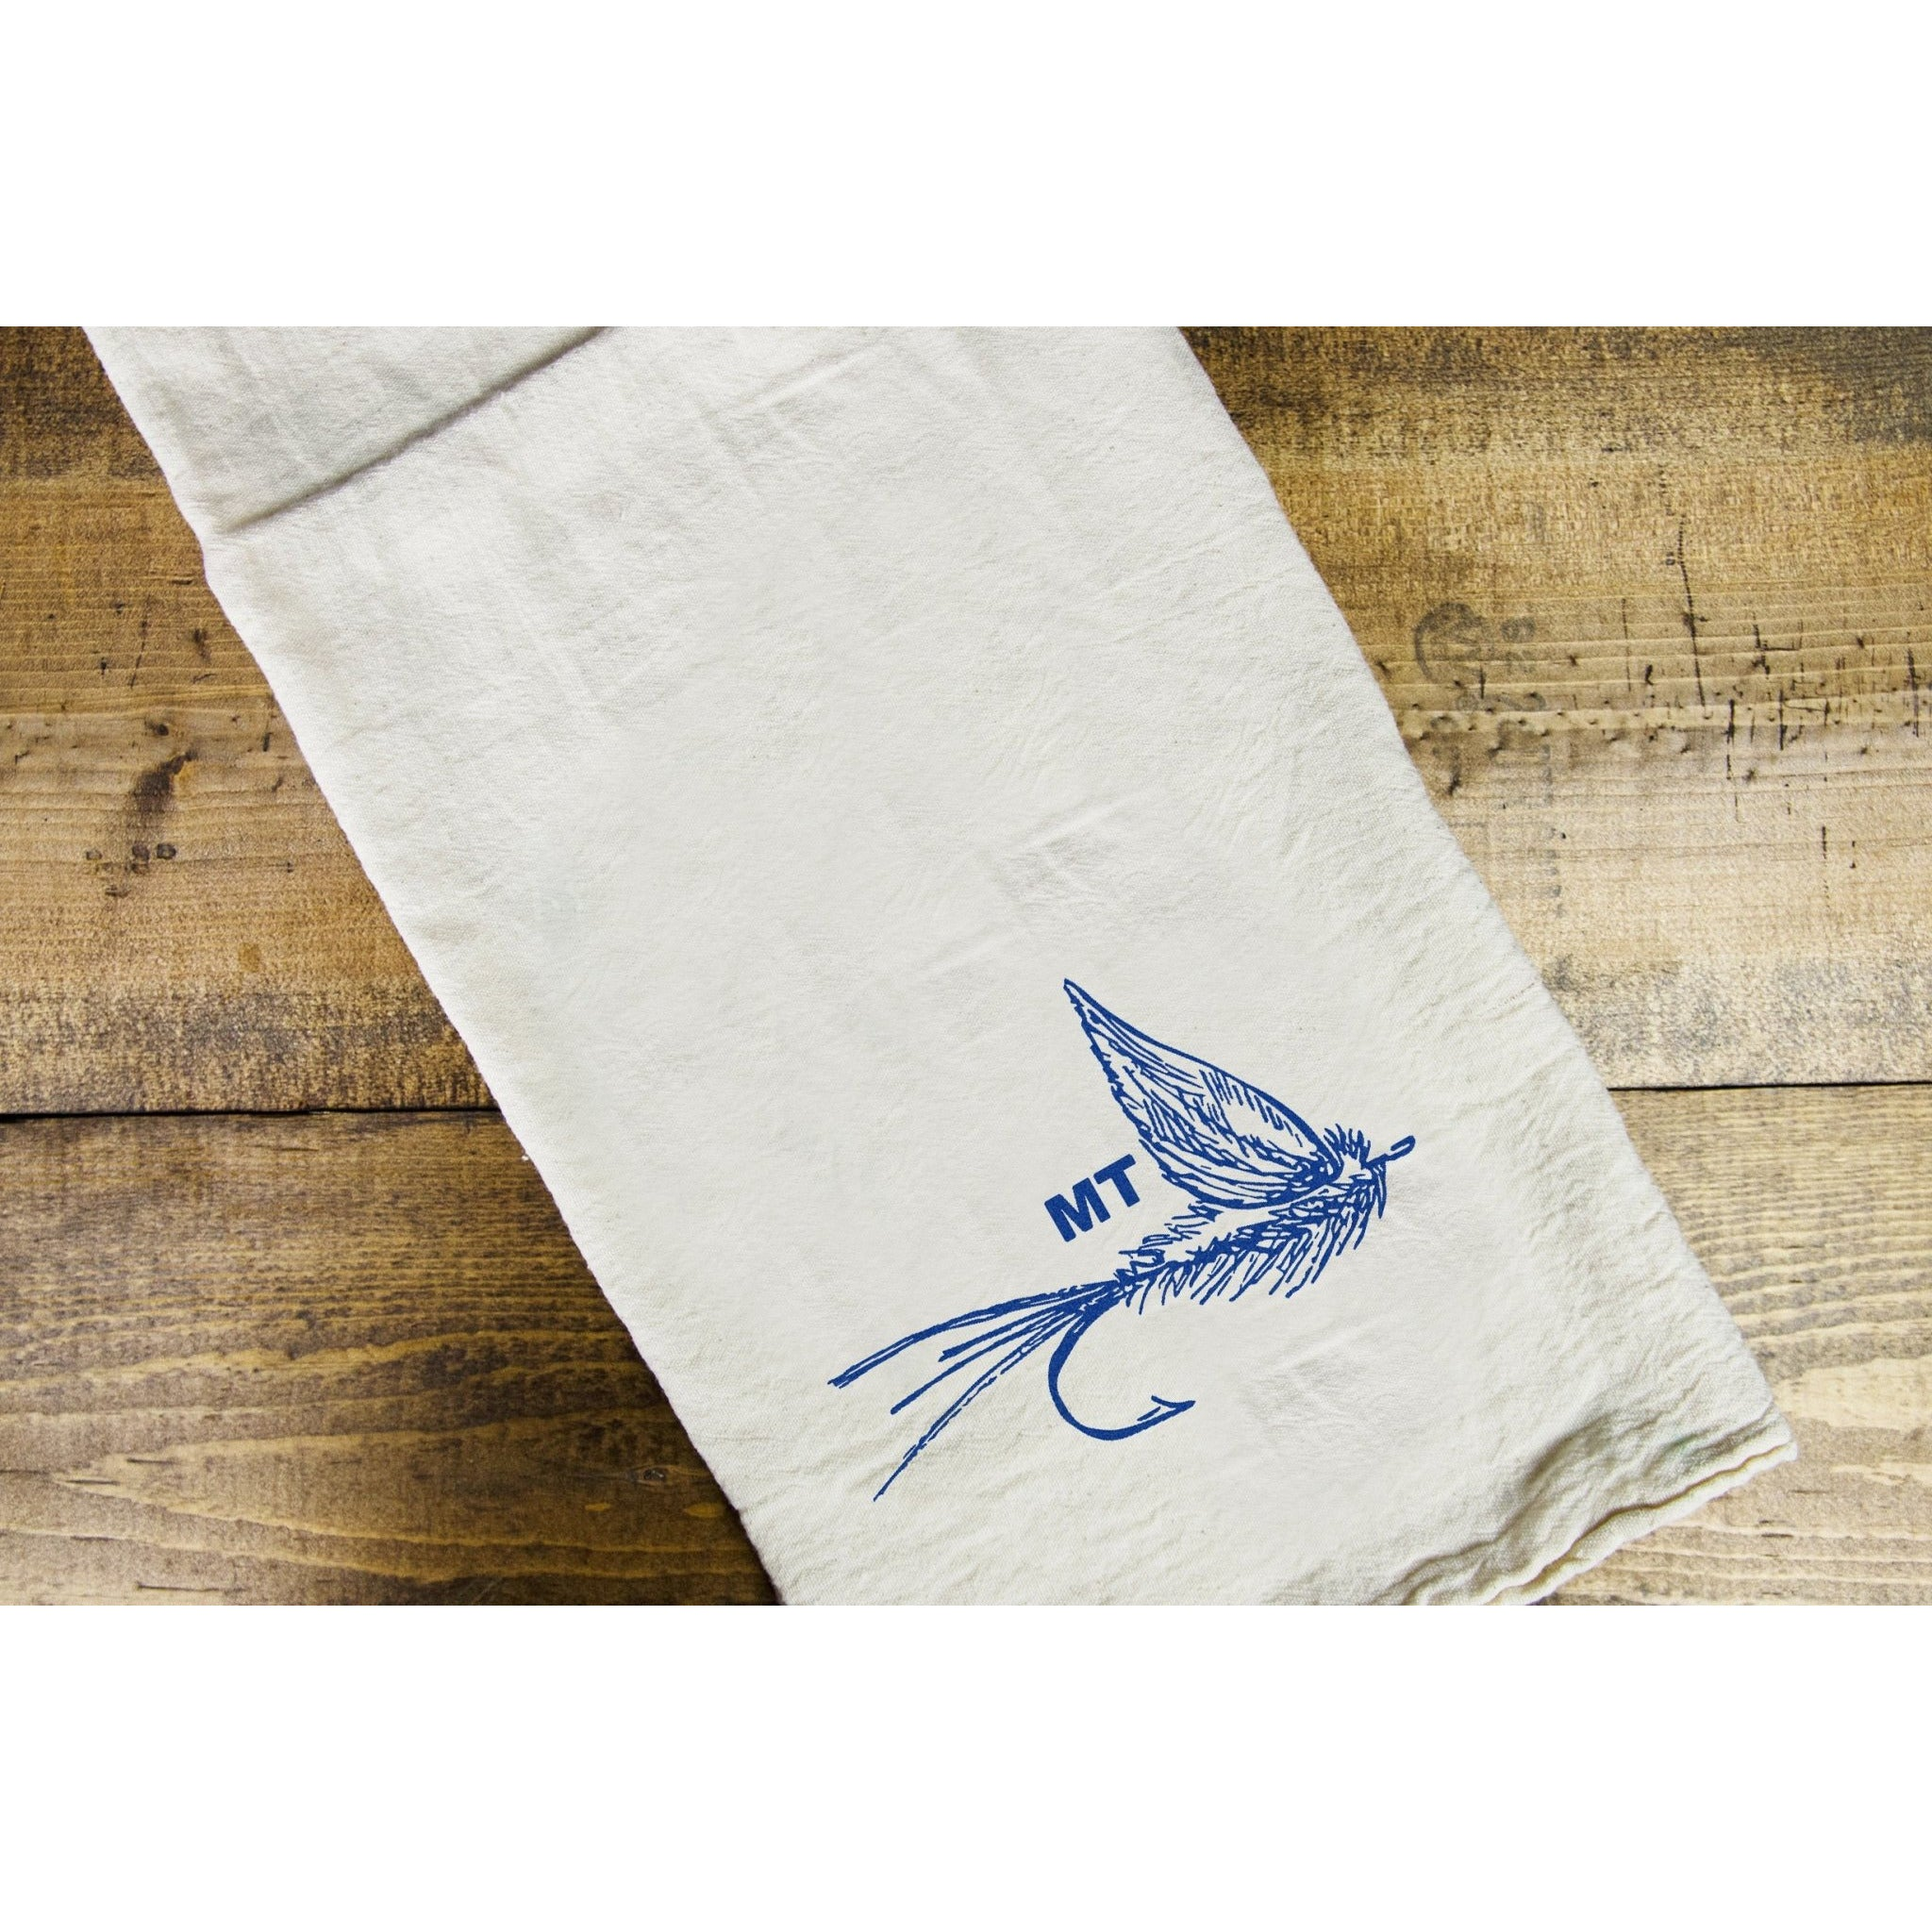 Dry Fly Dish Towel - Intrigue Ink Visit Bozeman, Unique Shopping Boutique in Montana, Work from Home Clothes for Women